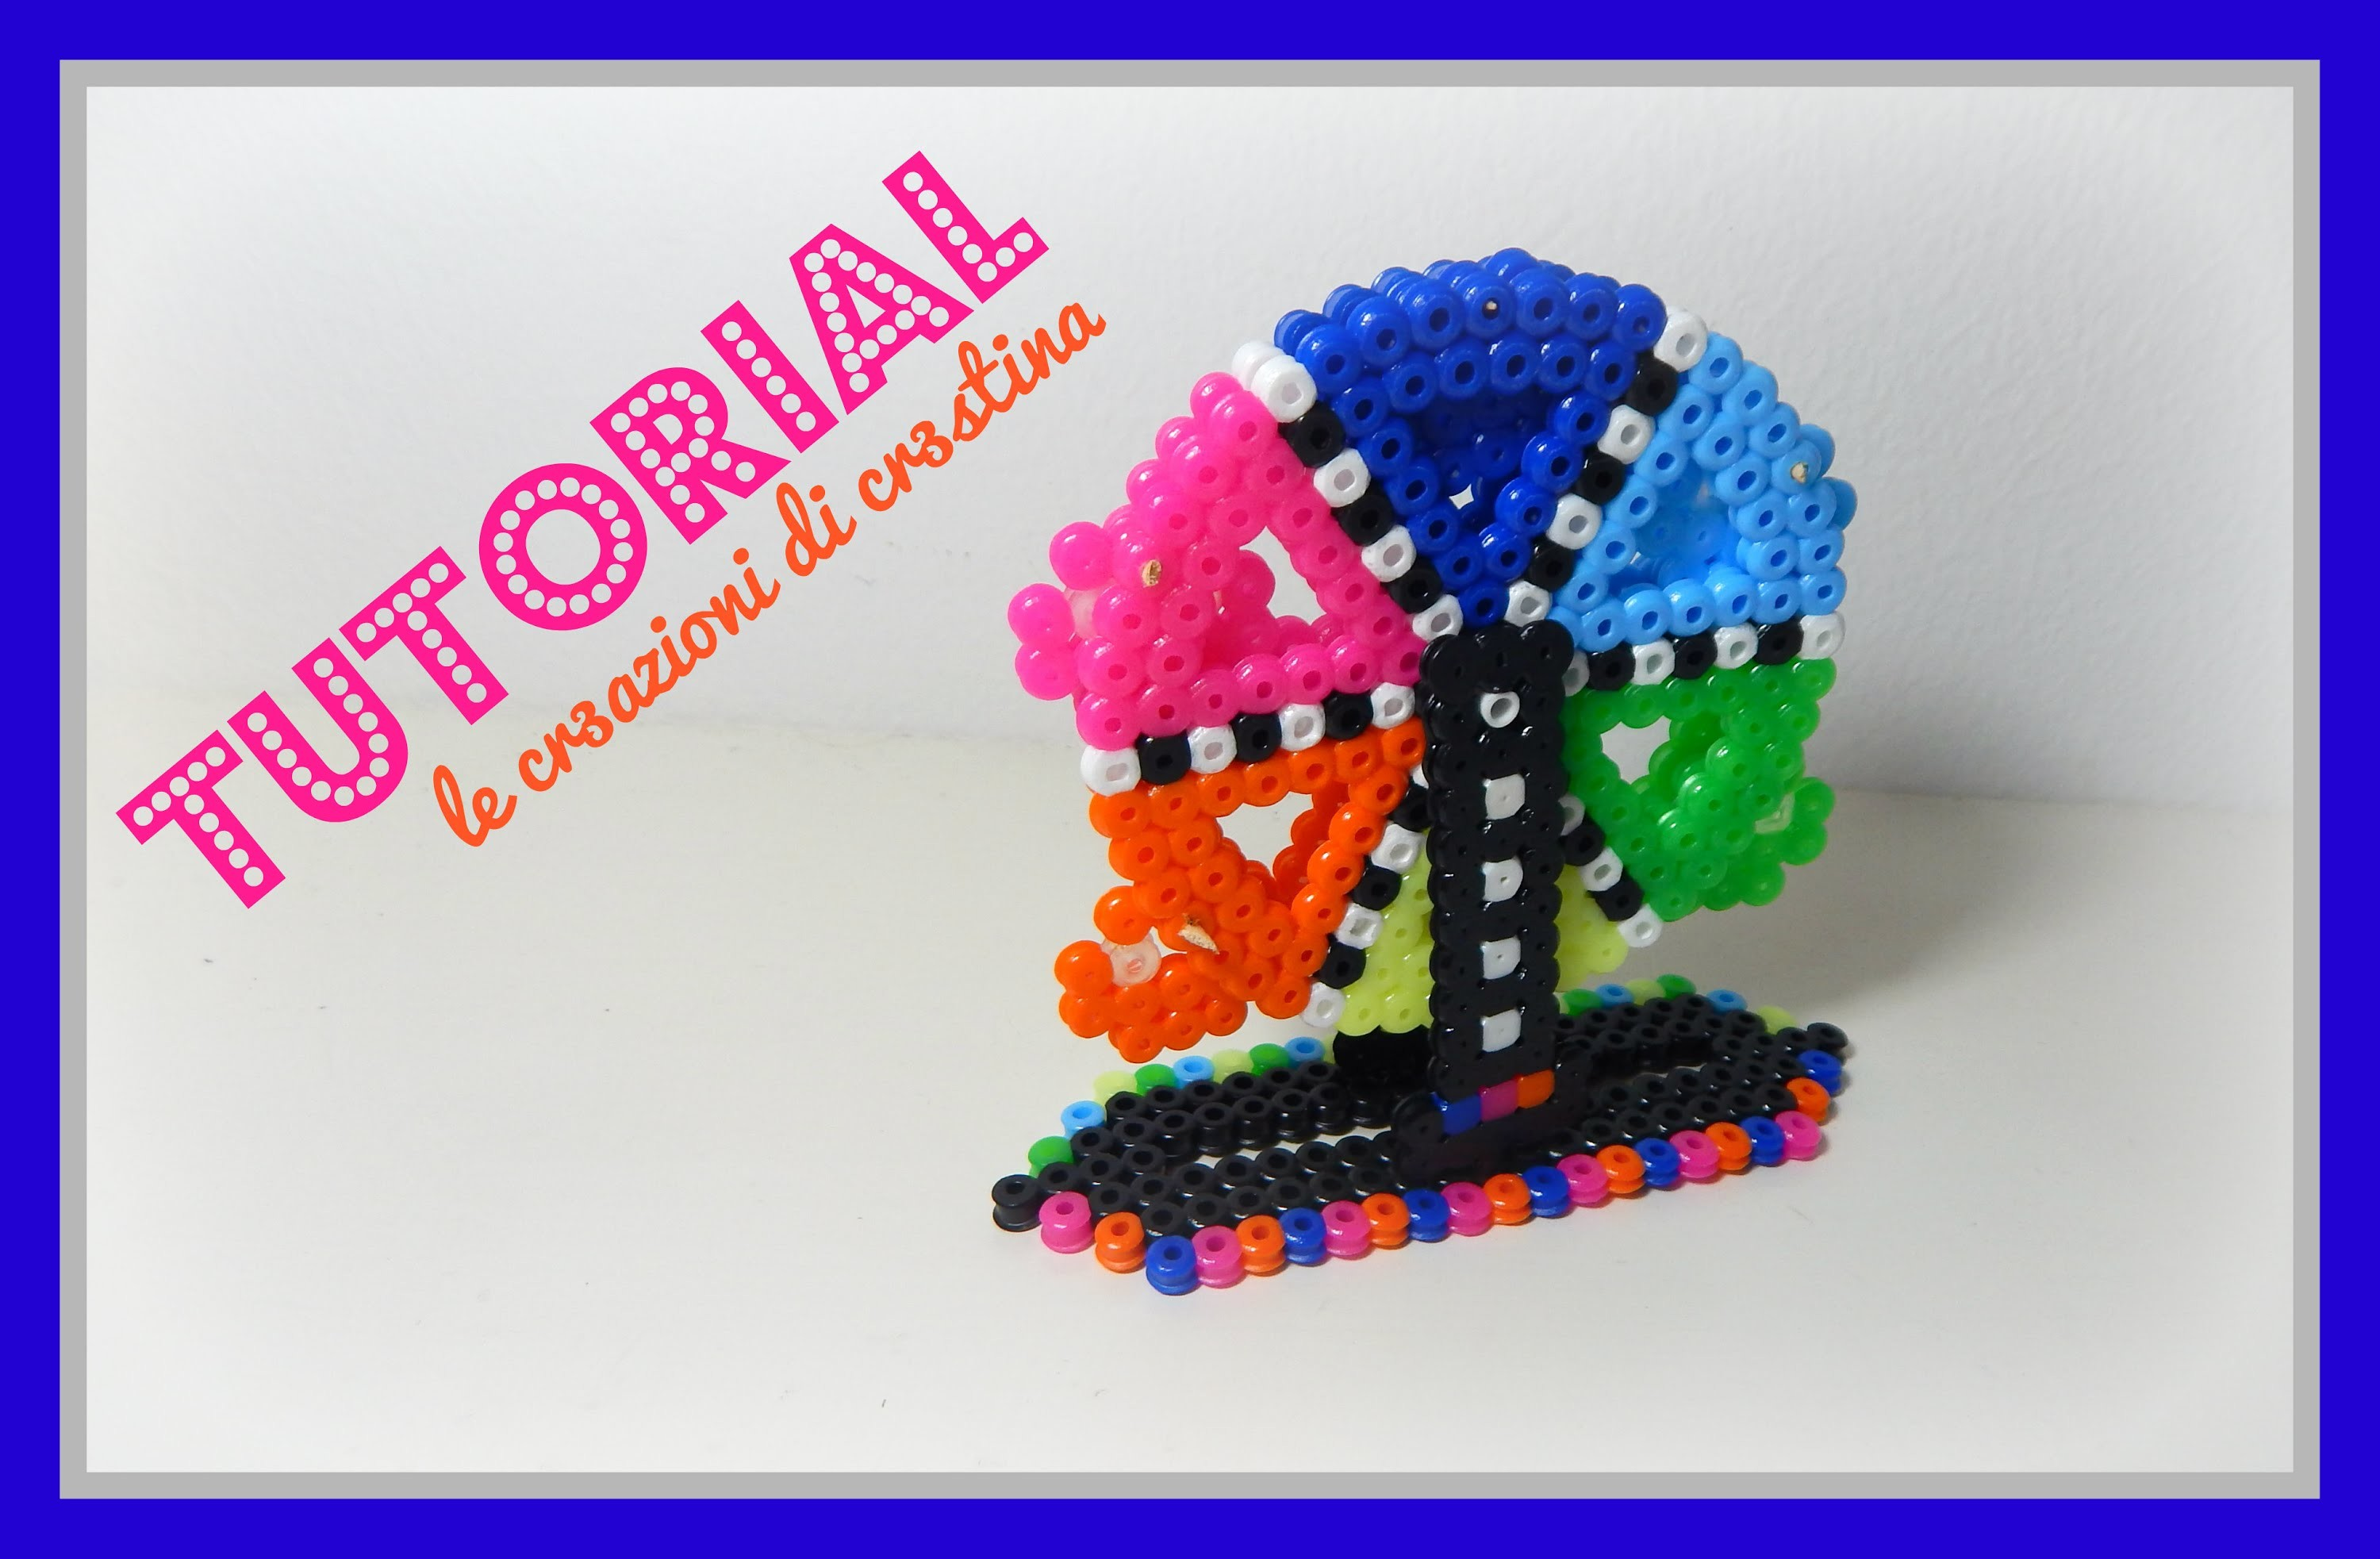 Tutorial Ruota Panoramica 3D con Hama Beads - www.perlinedastirare.it